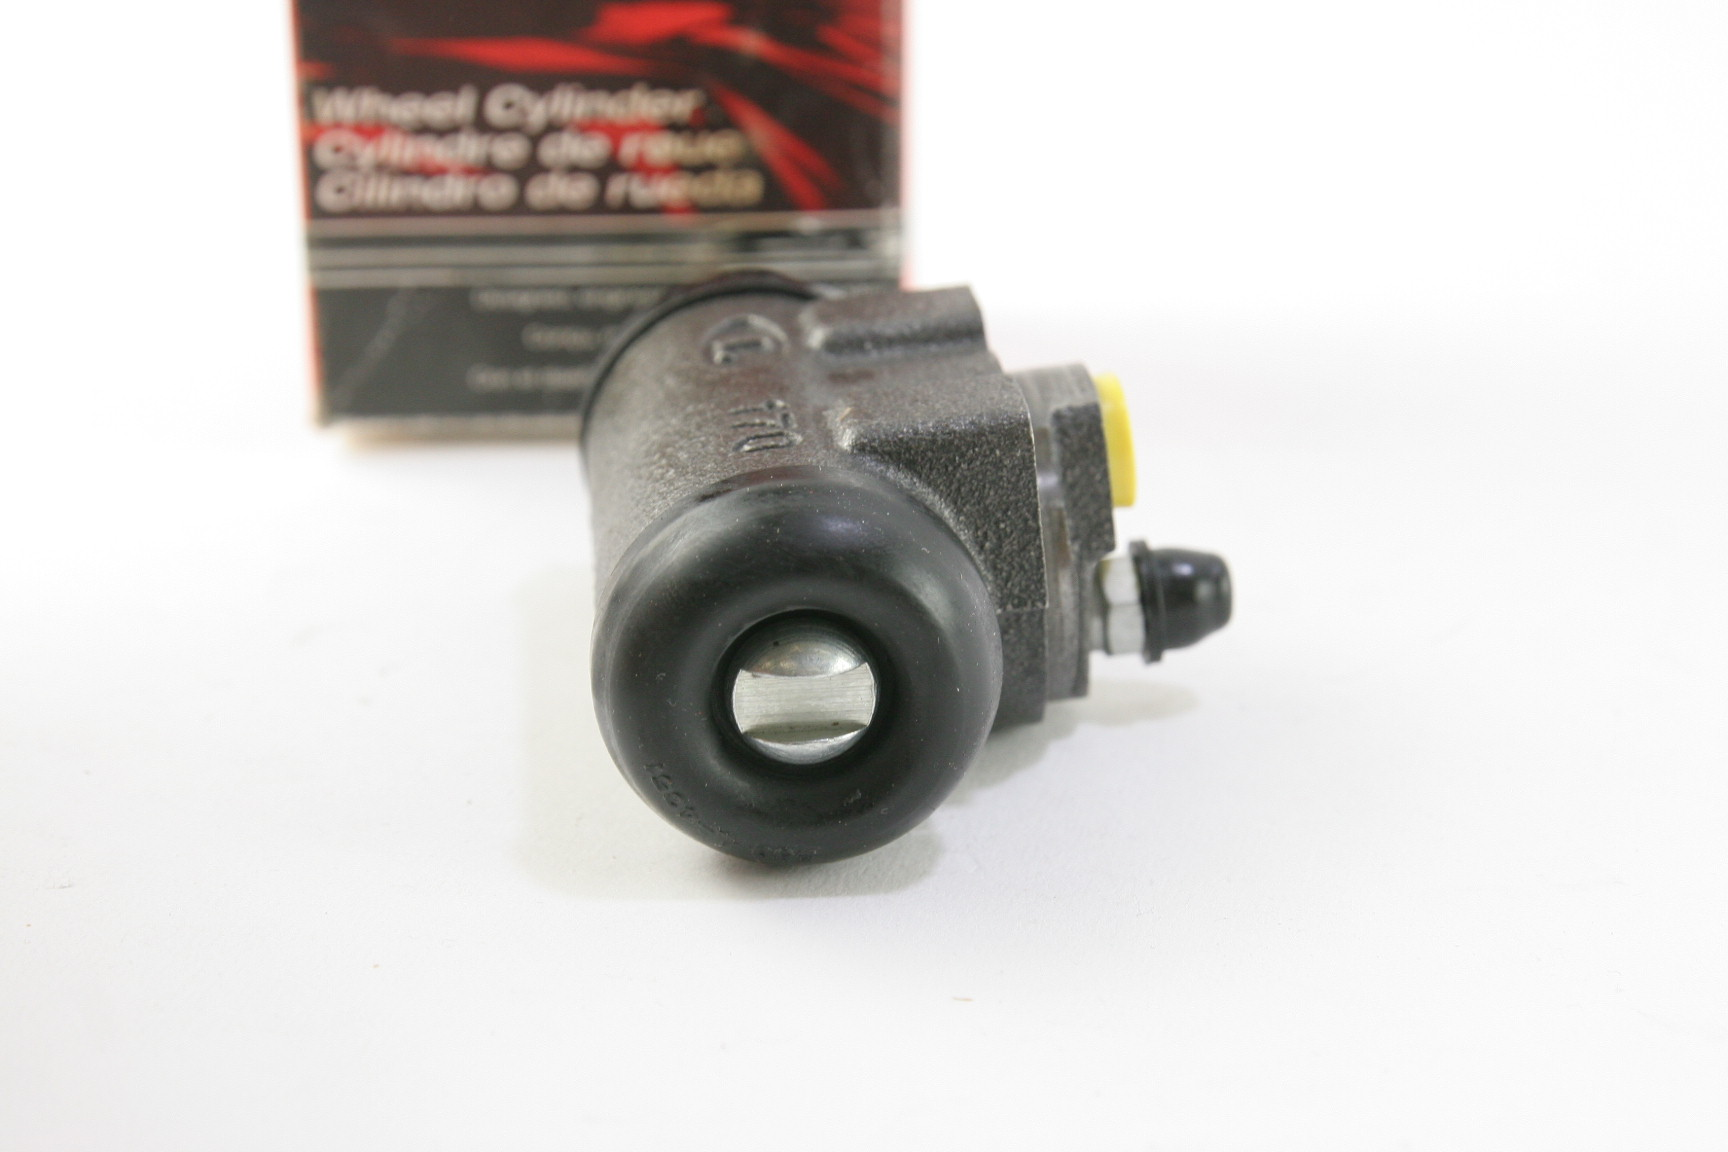 **** New OEM Motorcraft BRWC31 Ford 1F1Z2V261BA Rear Brake Cylinder - image 5